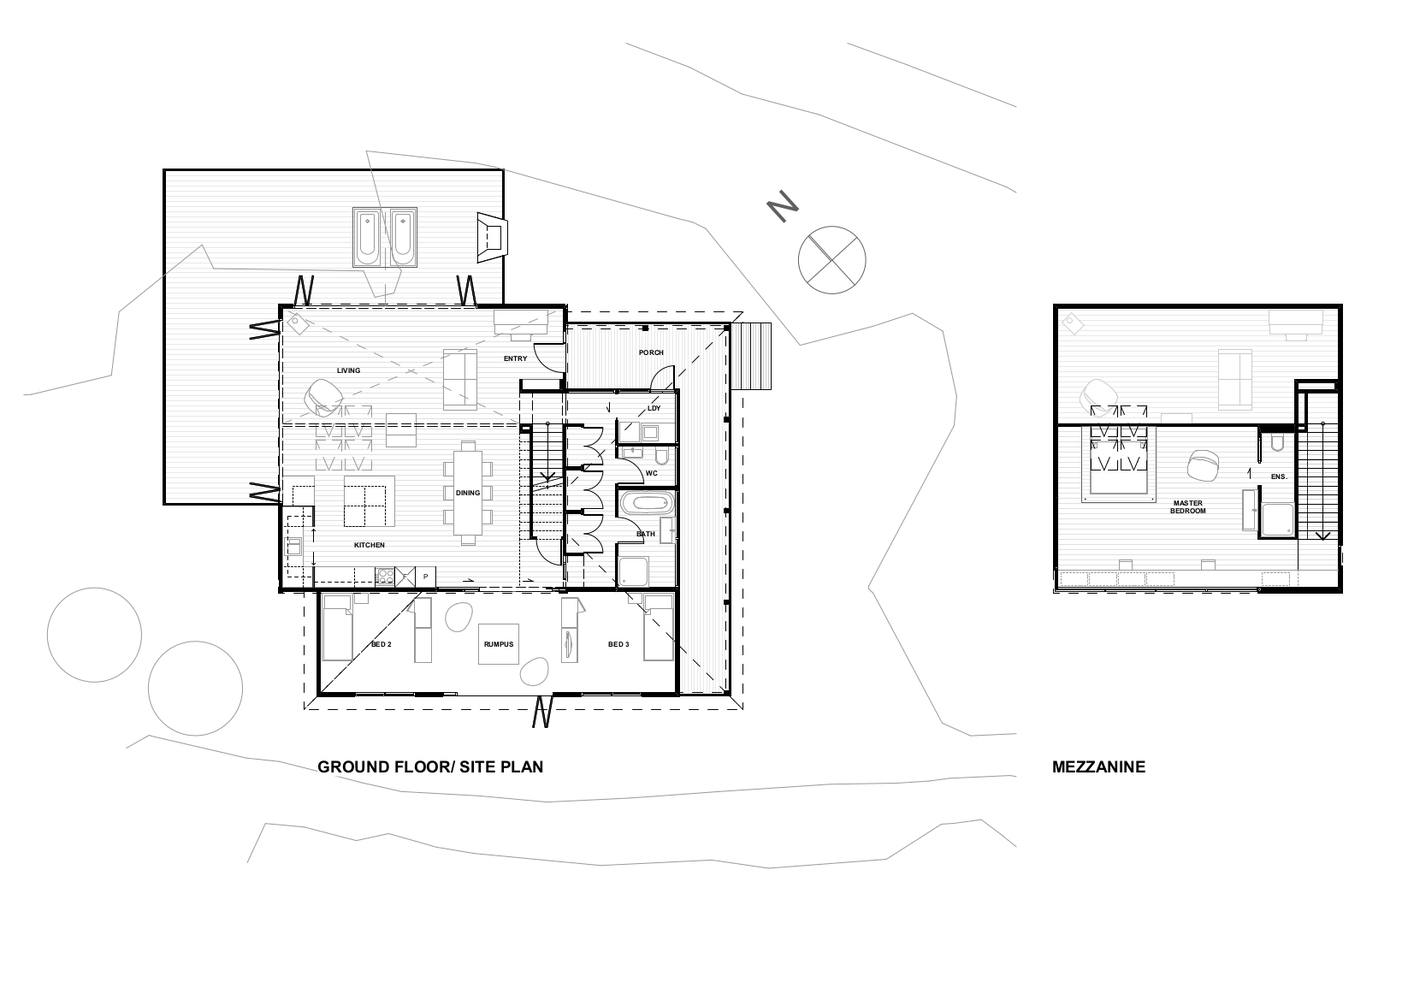 Mezzanine Plans gallery of back country house / ltd architectural design studio - 27